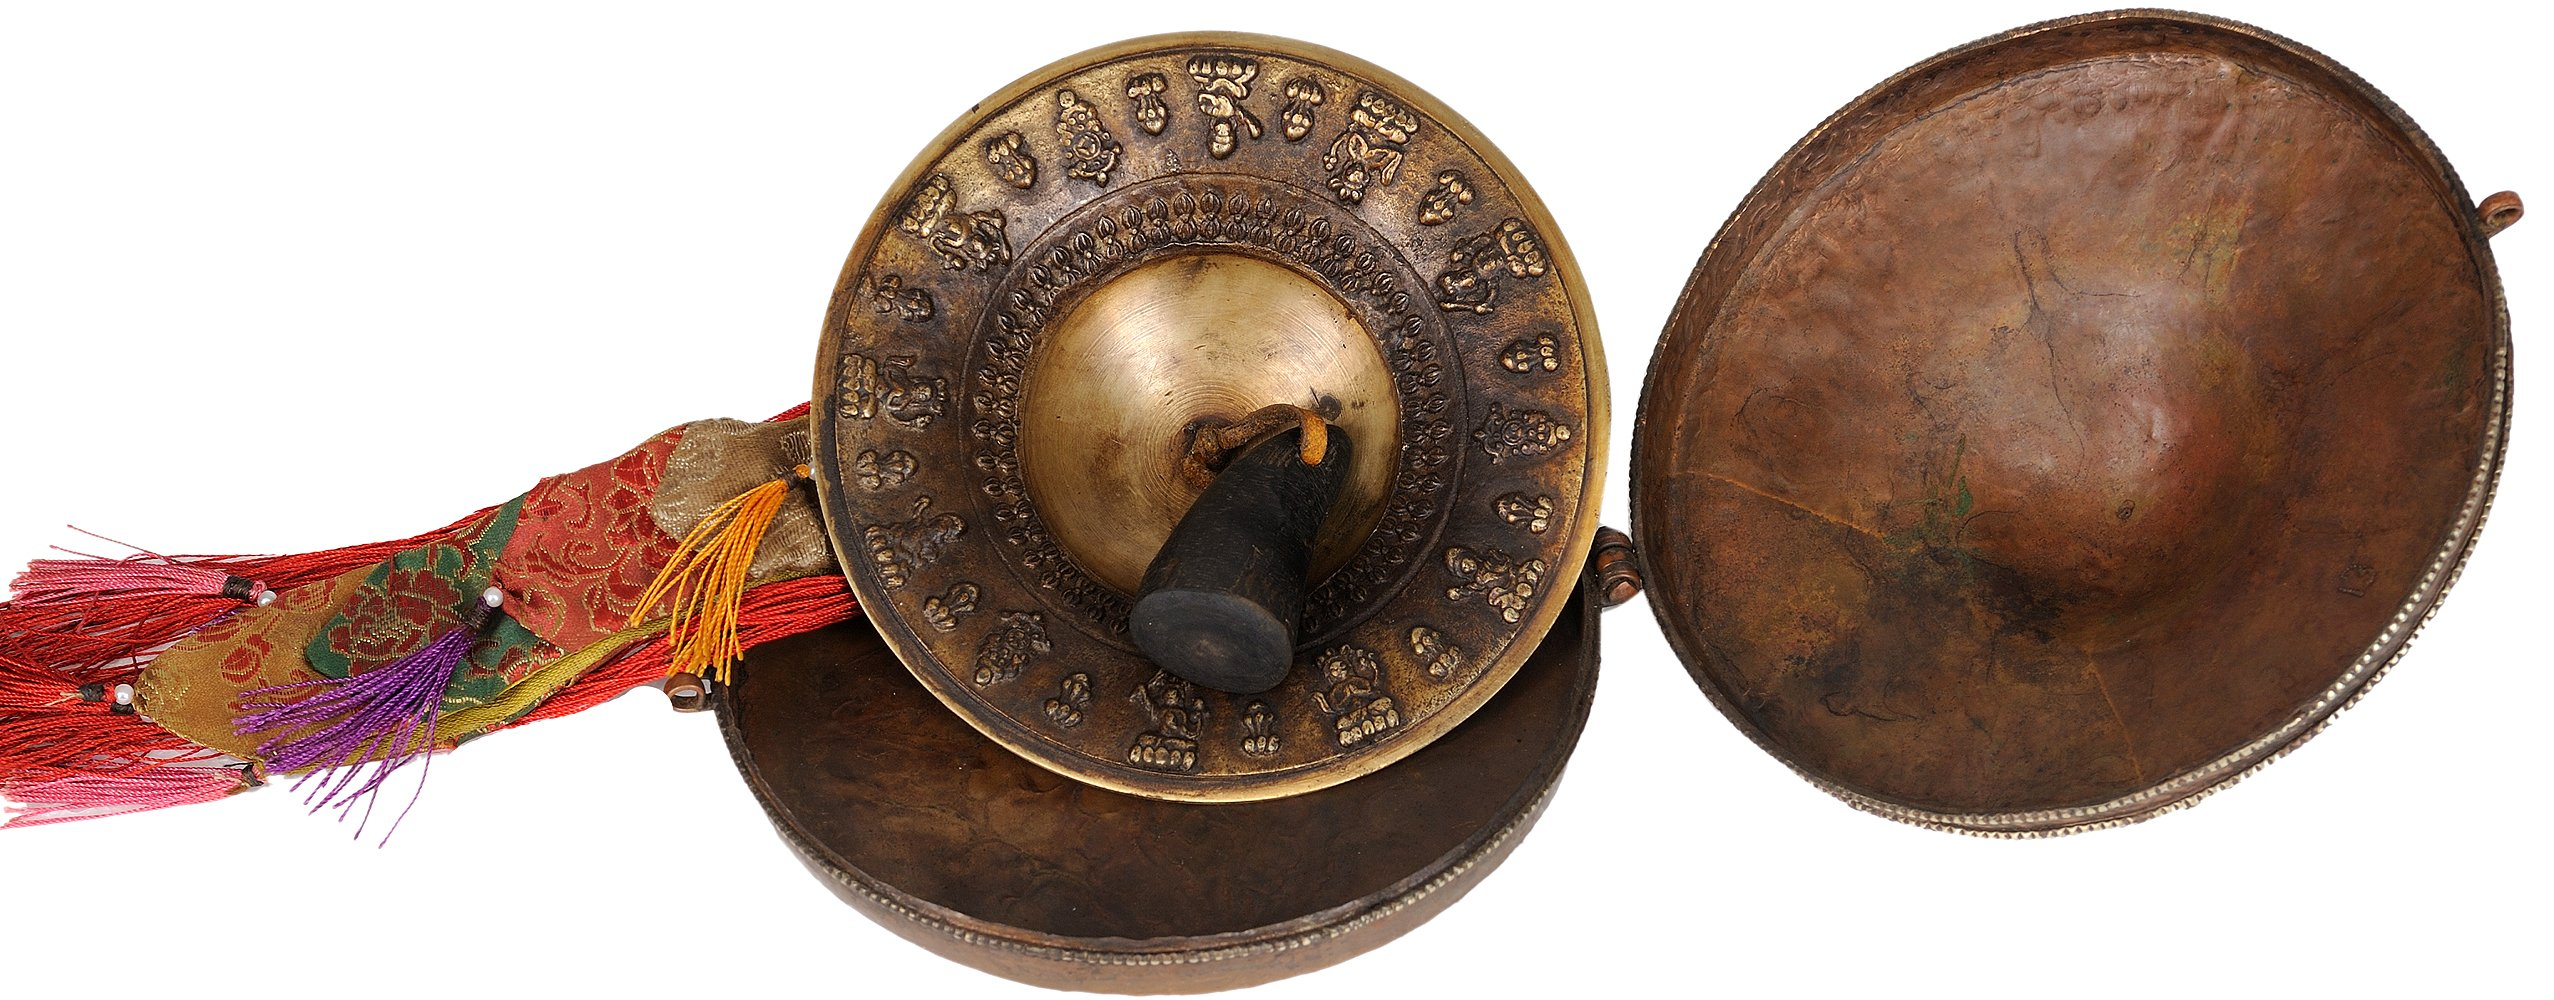 Cymbals with Case - Bronze and Copper Statue